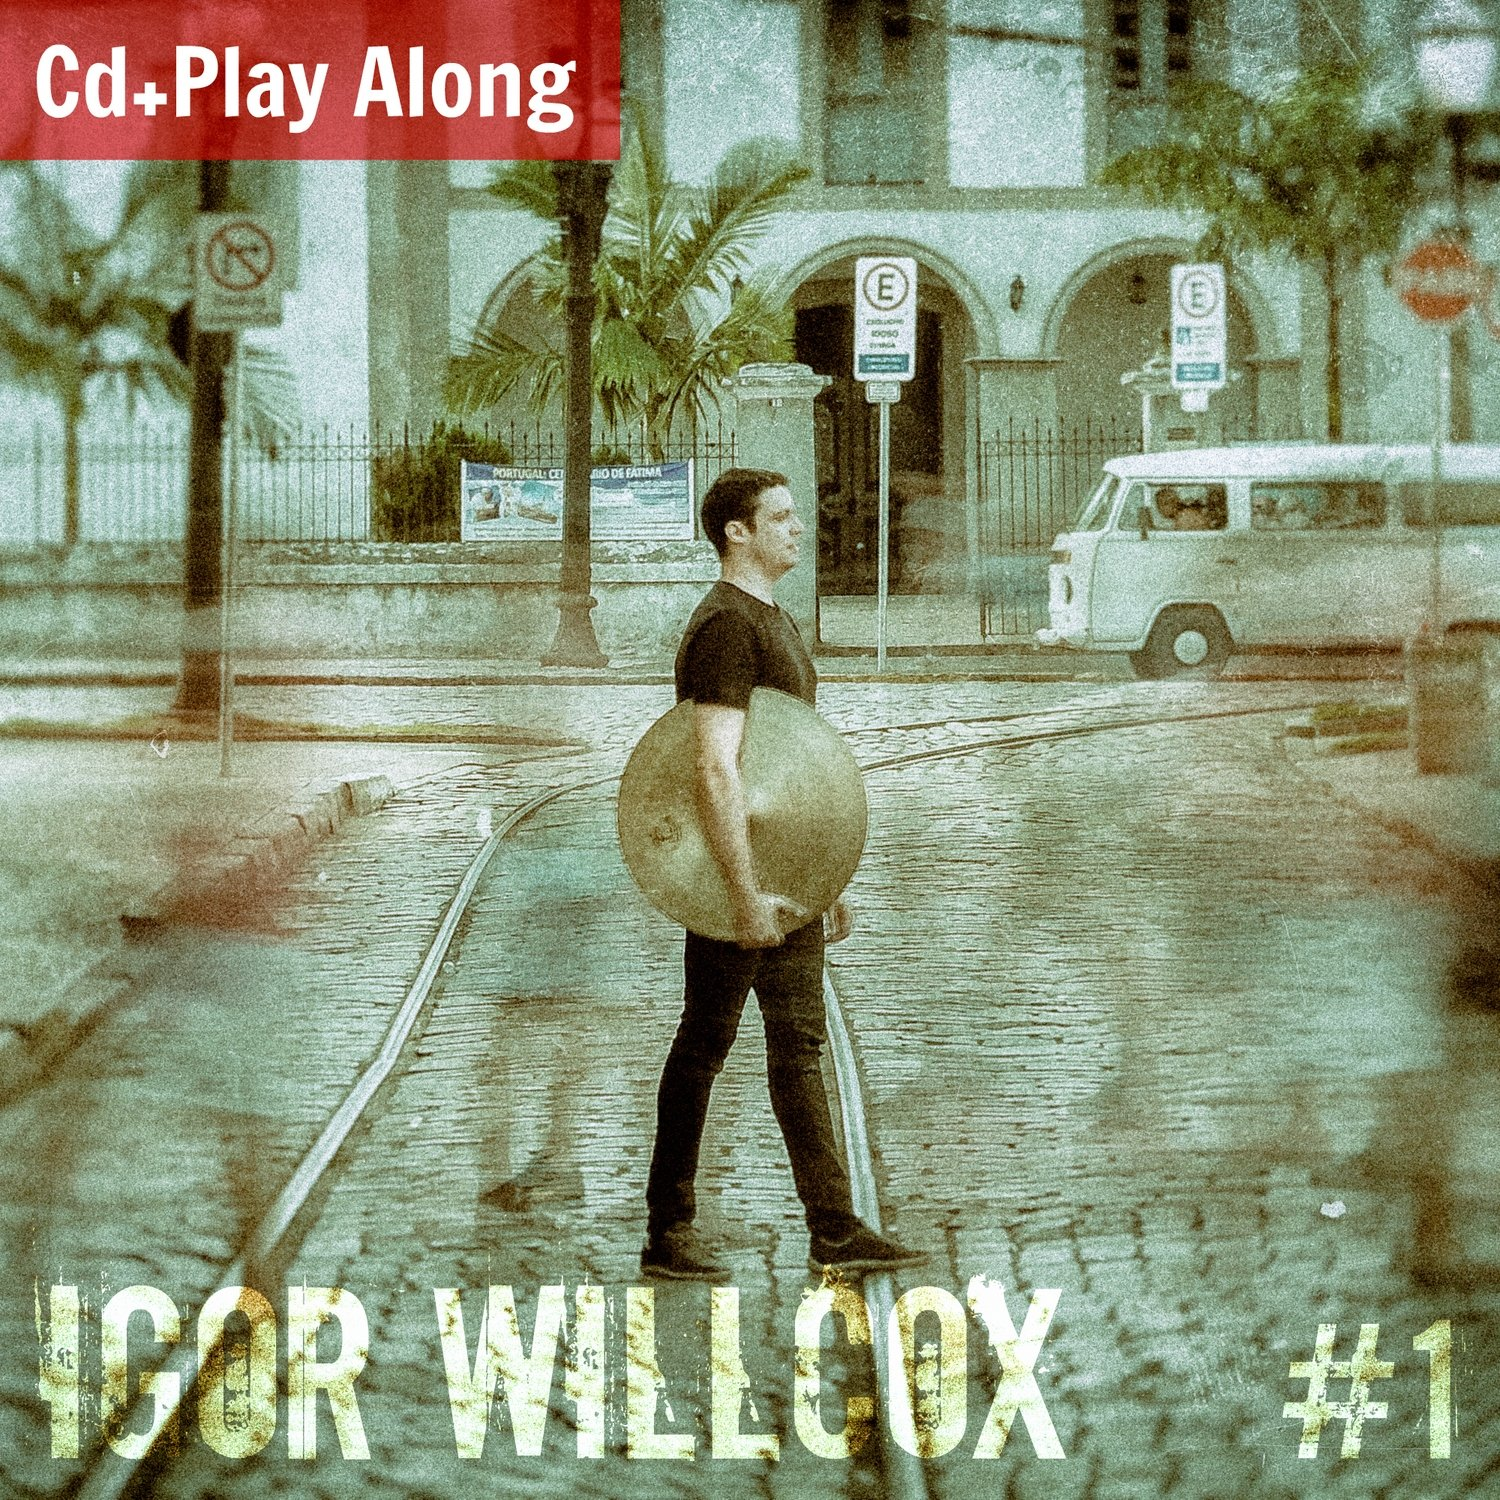 Cd + Play Along - Igor Willcox #1